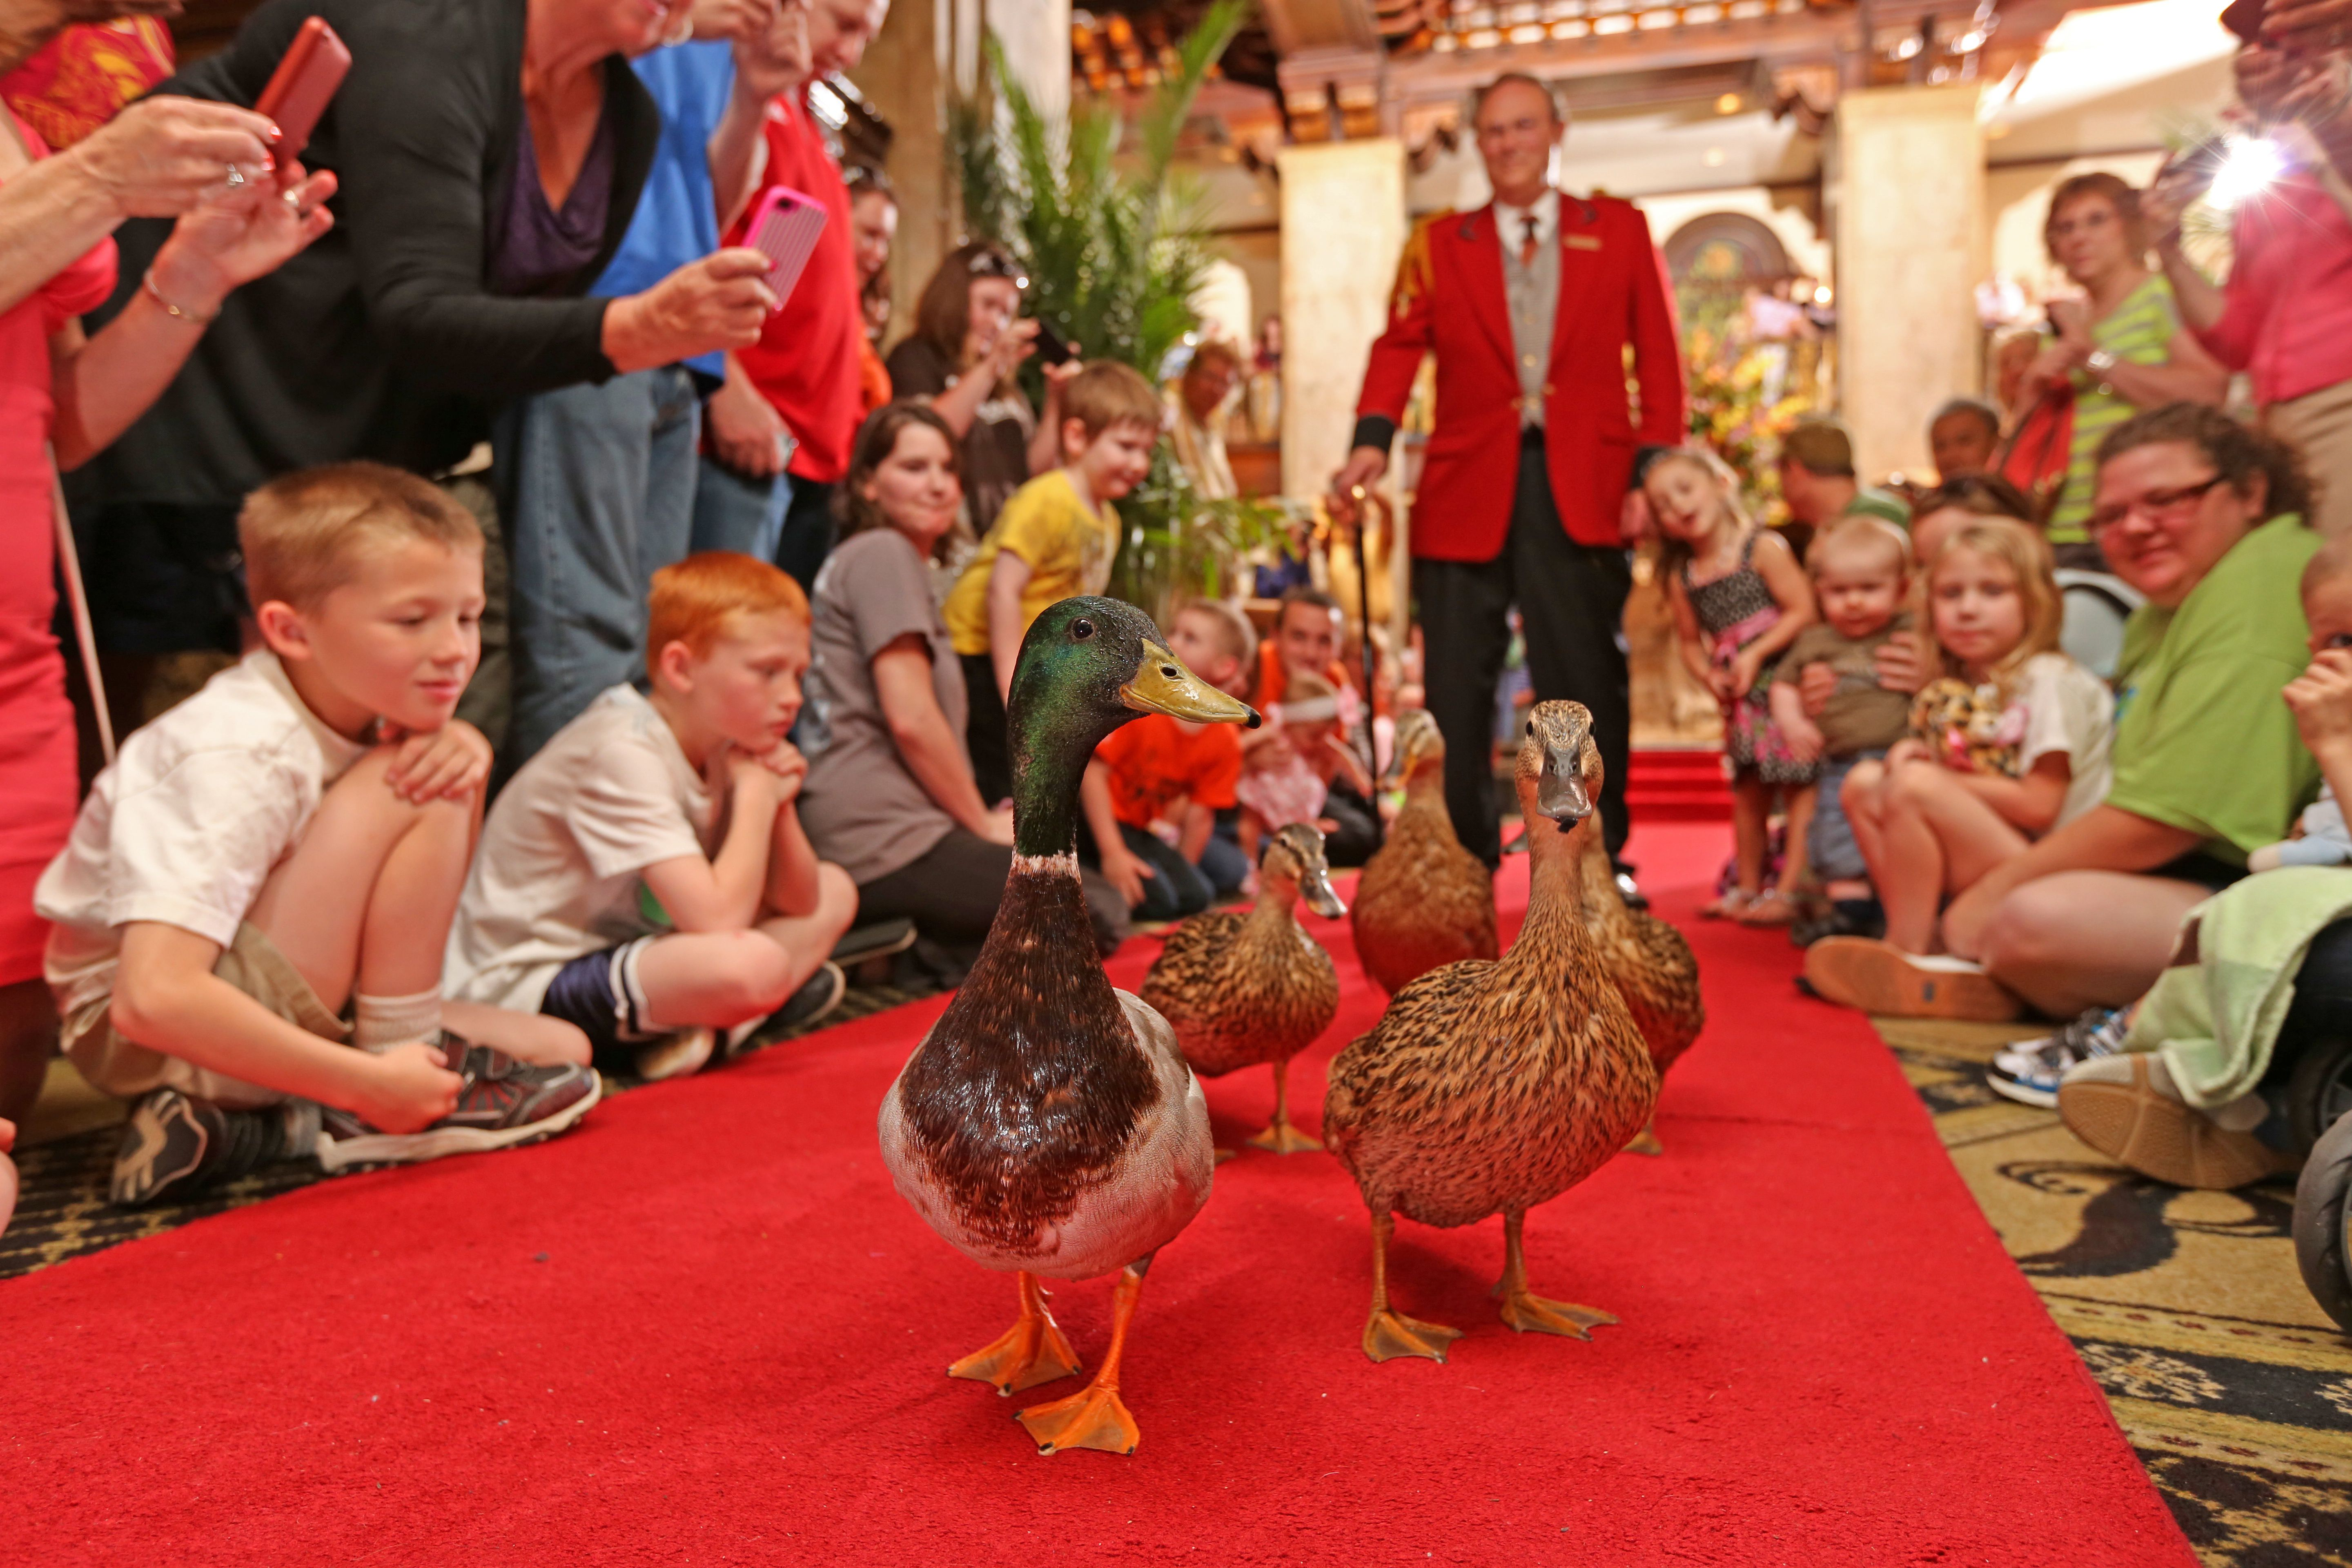 Children watch the ducks walk the red carpet at The Peabody Hotel, followed by the Duckmaster in his red jacket